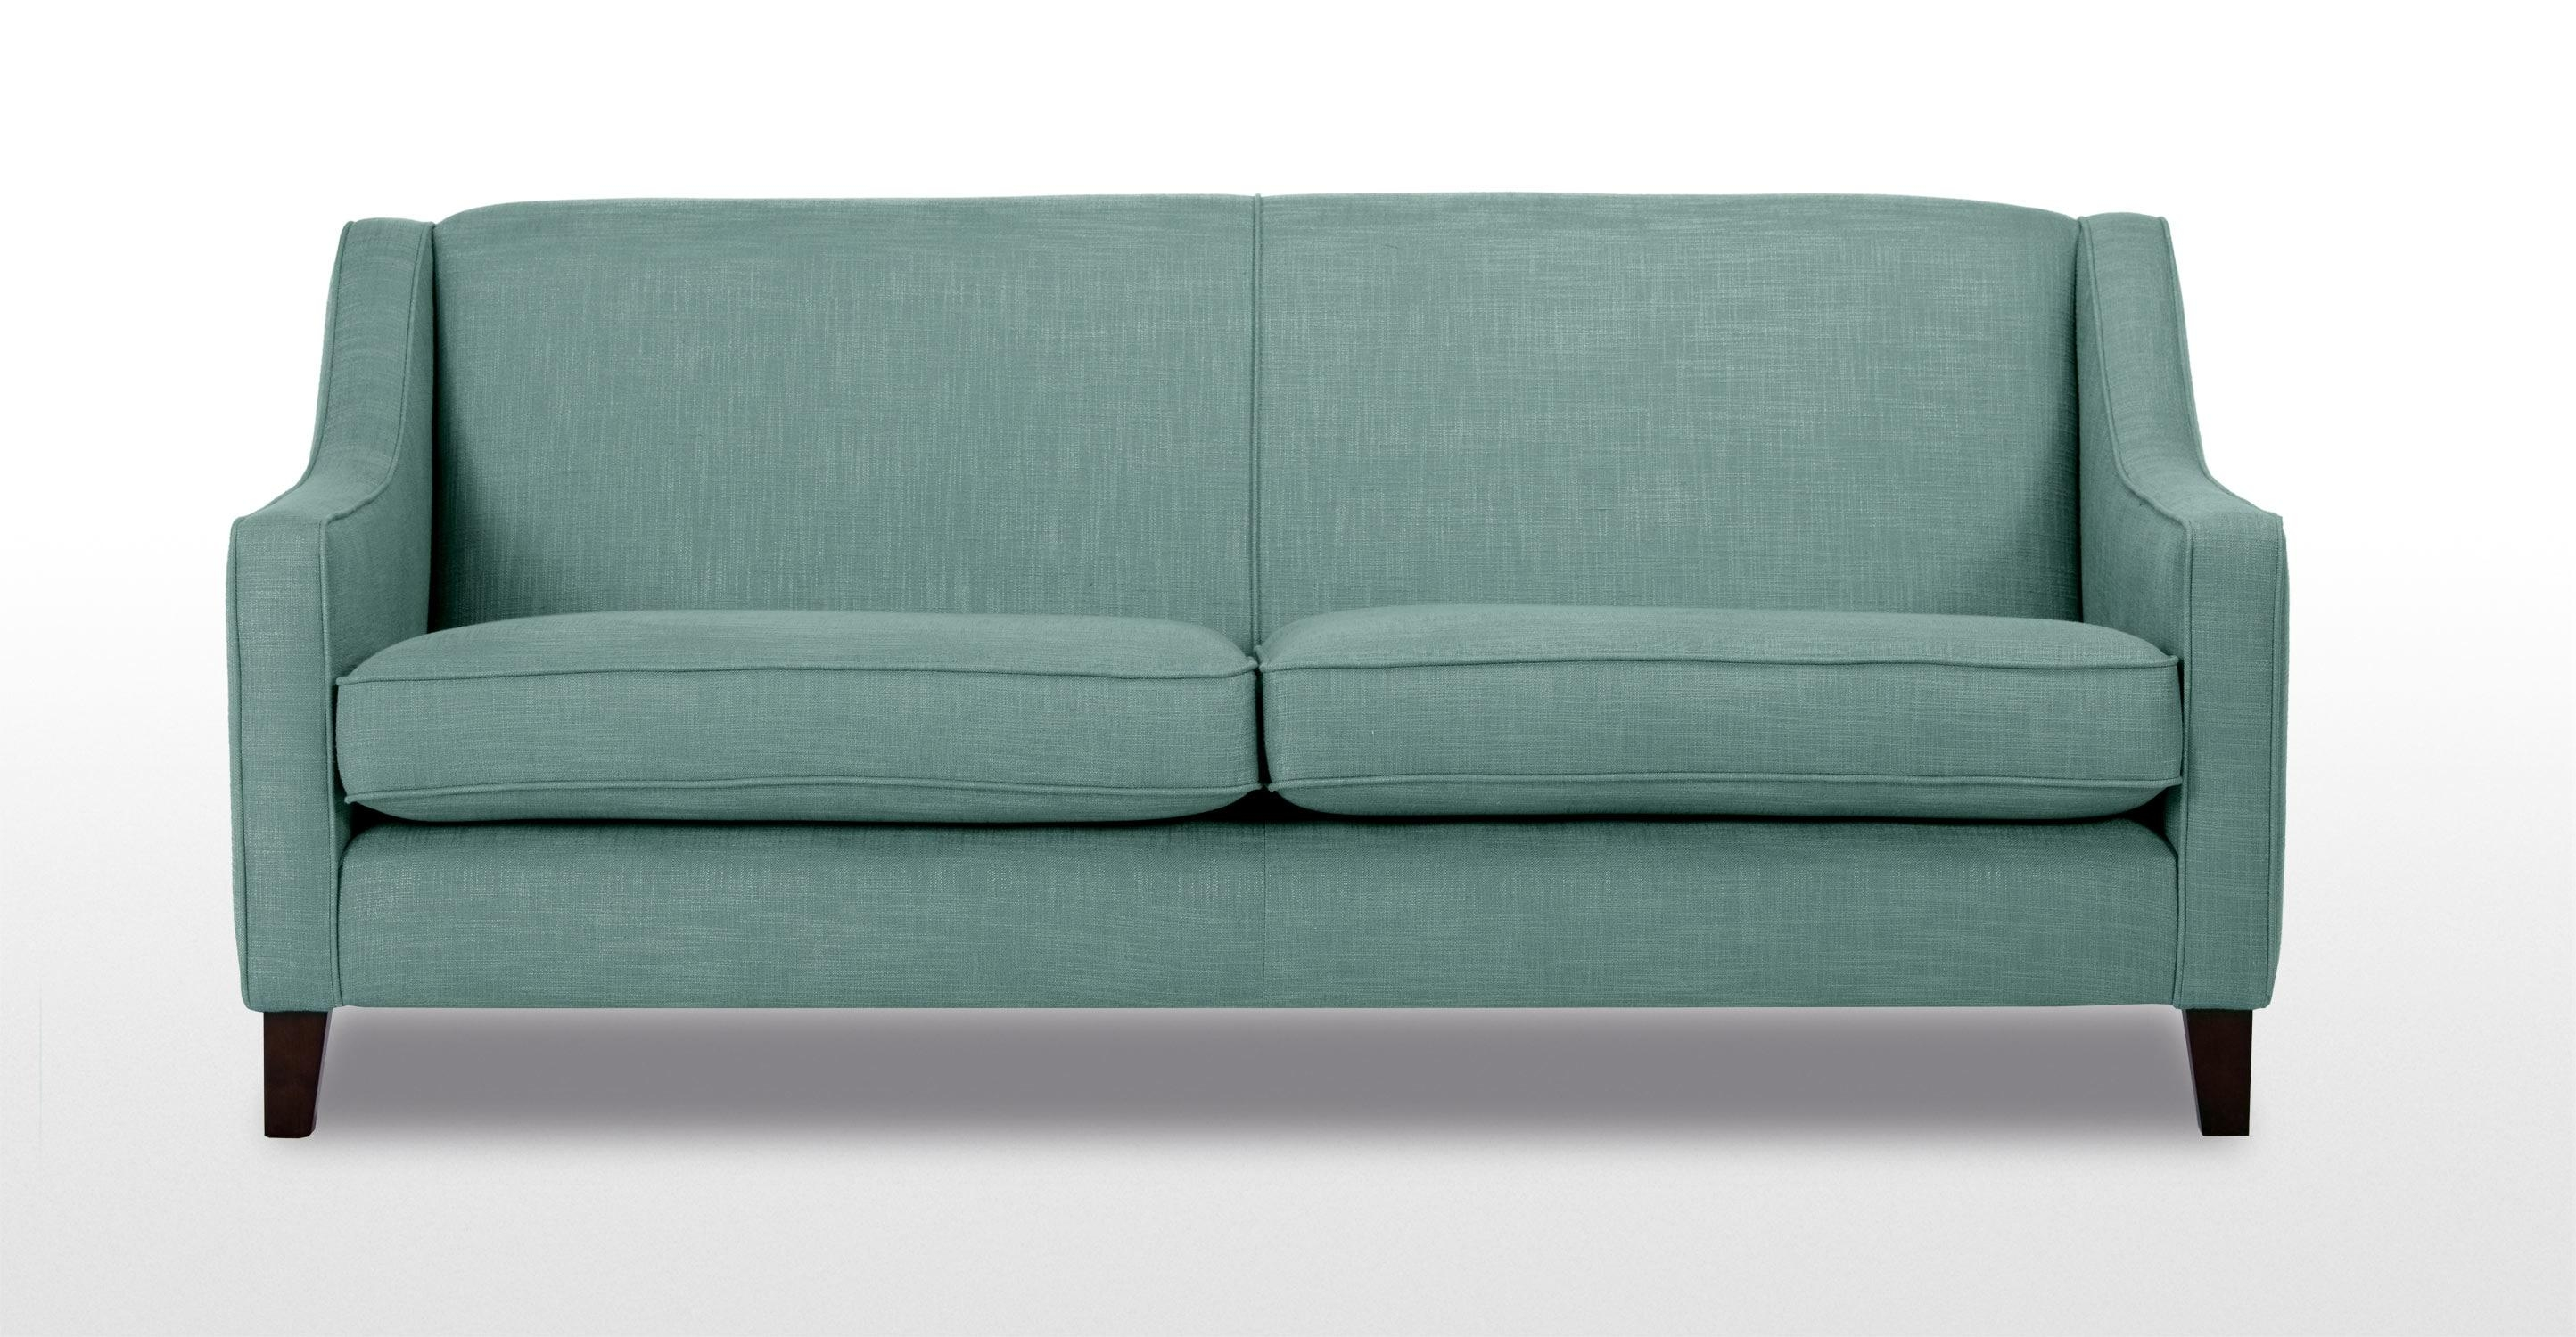 Halston 3 Seater Sofa In Aqua | Made Within Aqua Sofa Beds (Image 14 of 20)